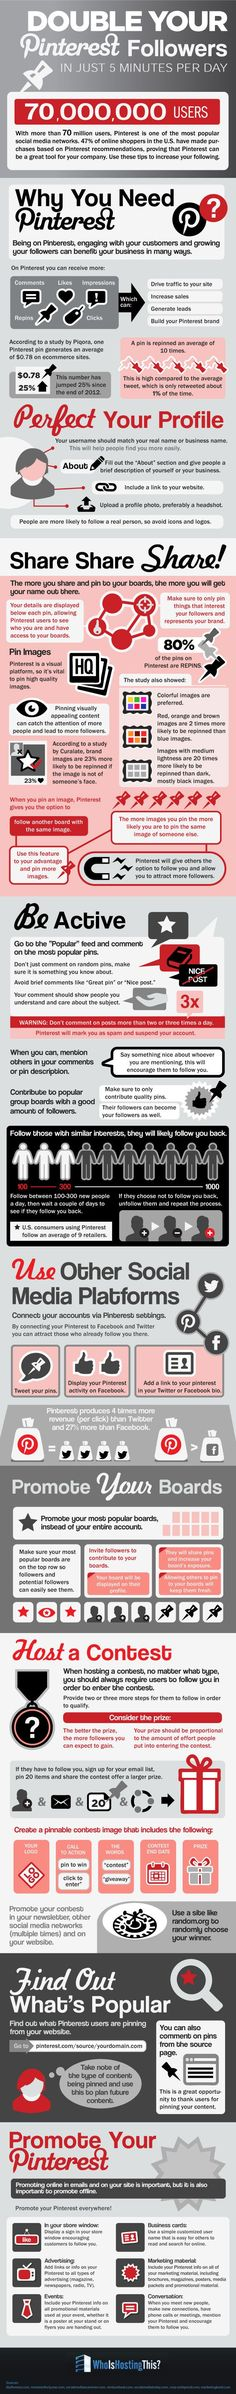 "SOCIAL MEDIA - ""How To increase your #Pinterest followers in just 5 Minutes per day - #infographic #socialmedia""."